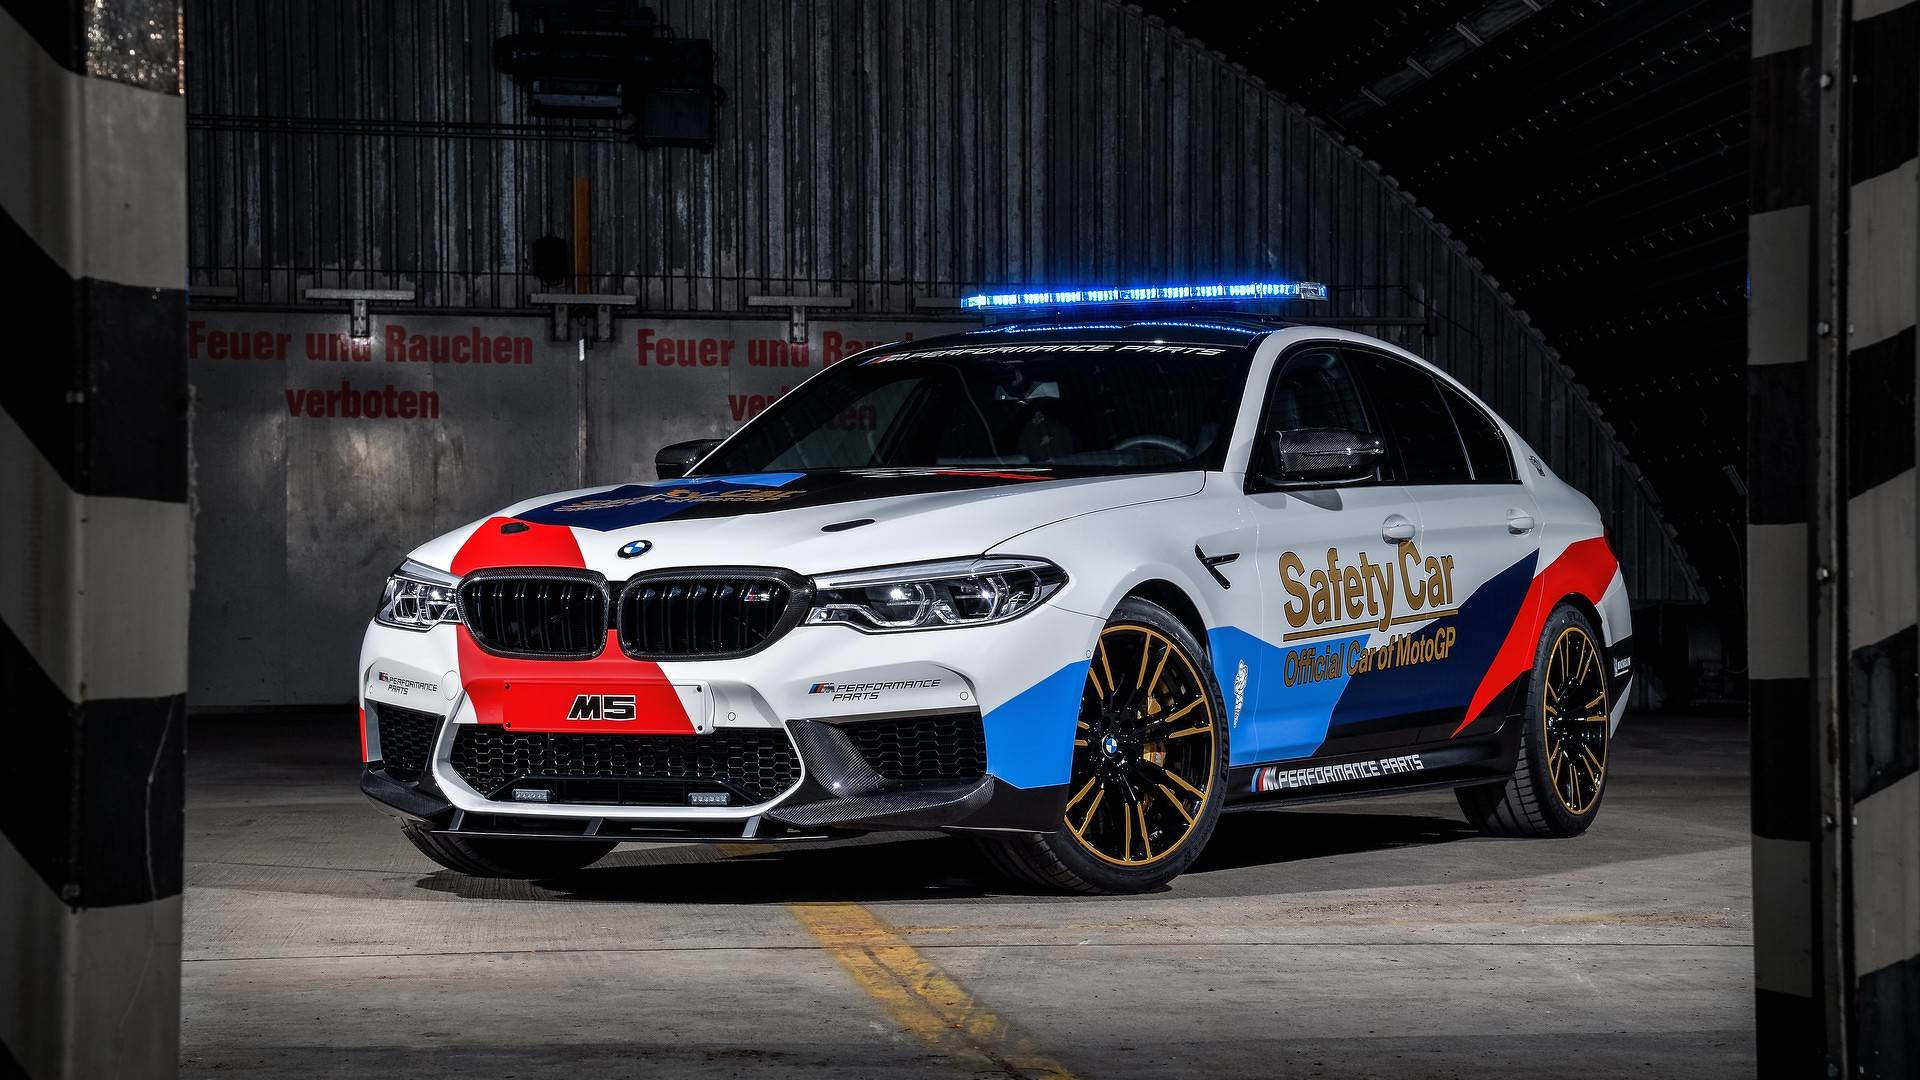 bmw-m5-motogp-safety-car (4)